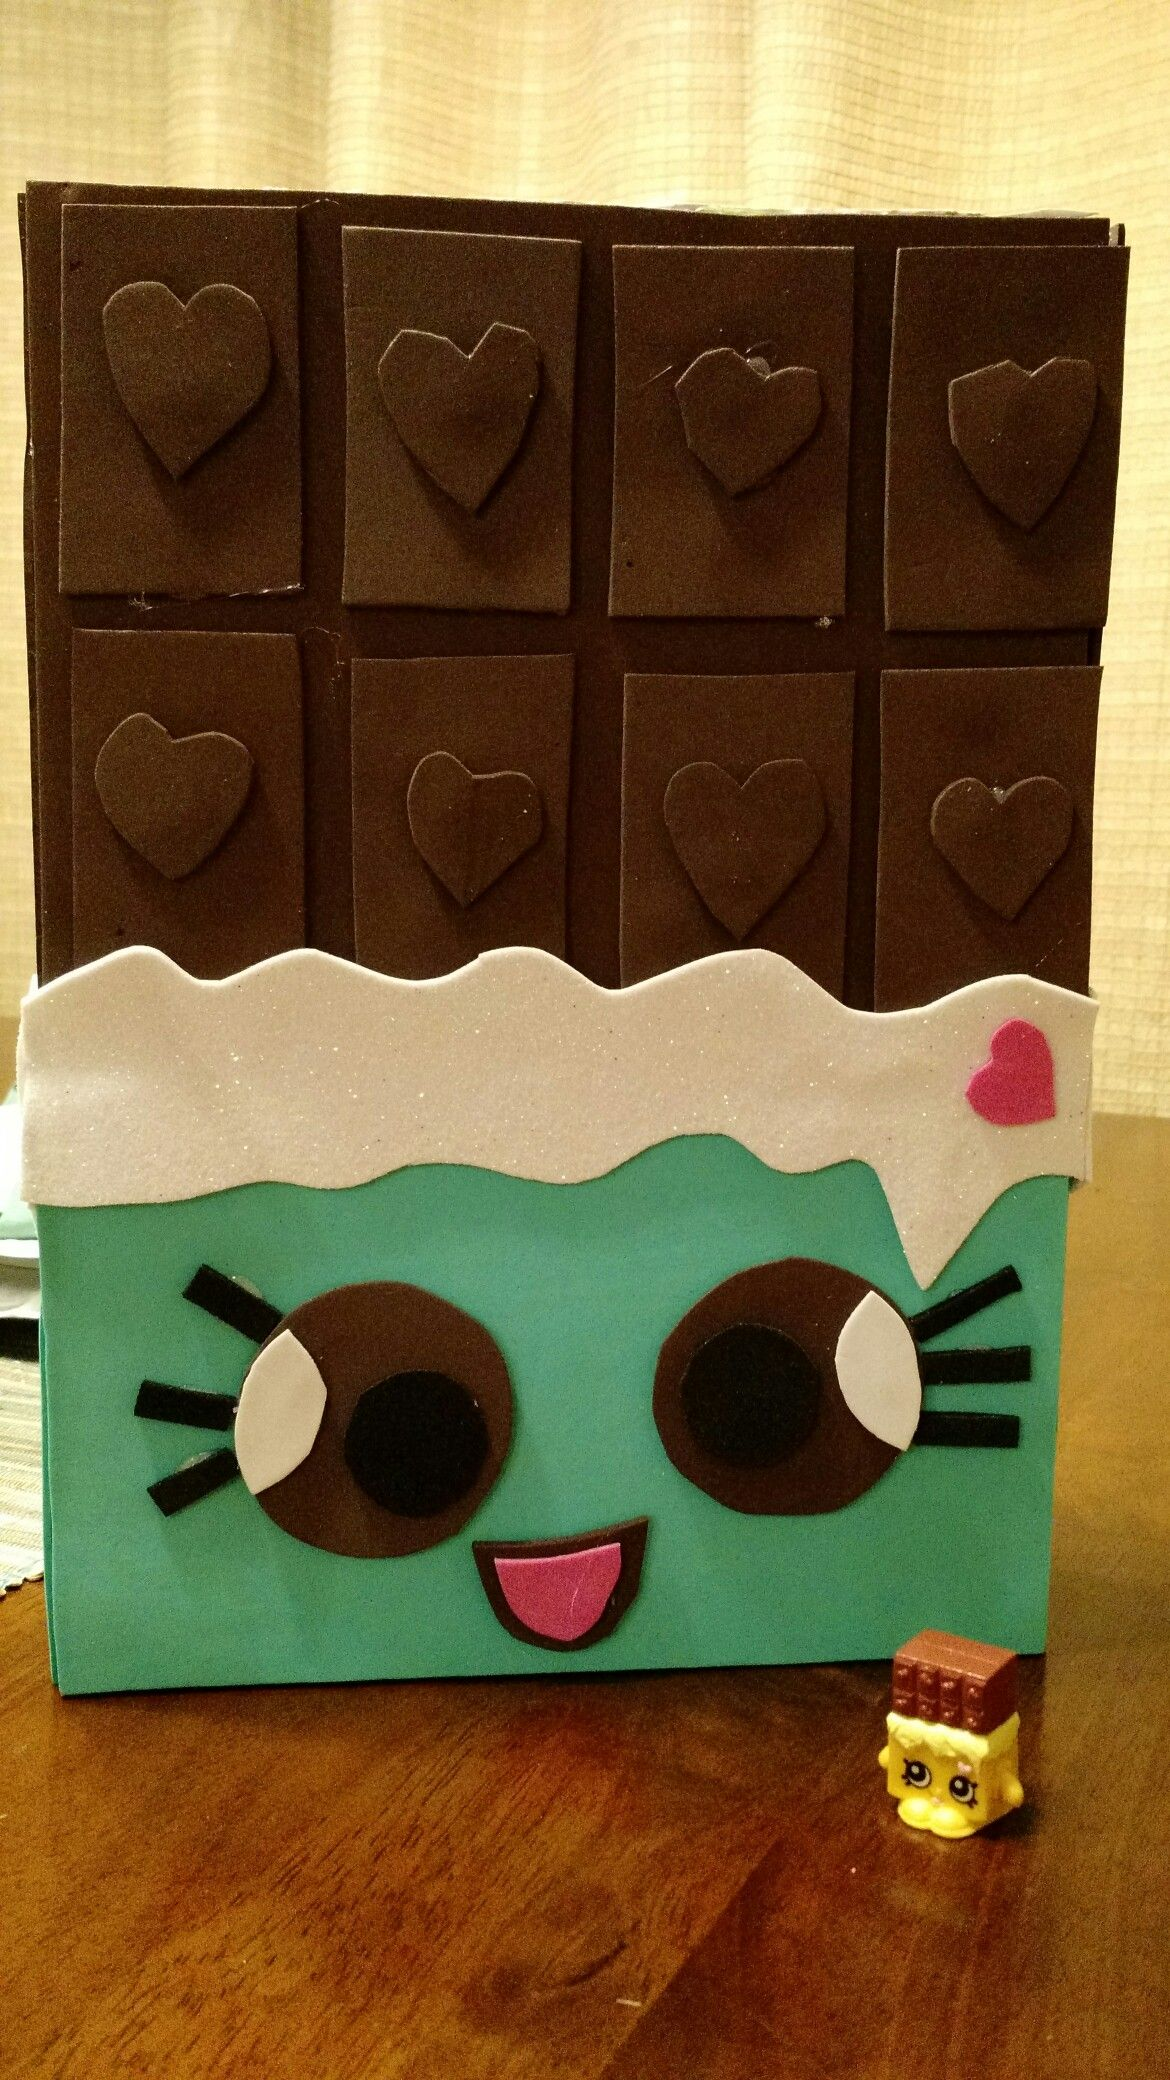 Cheeky Chocolate Shopkins Valentine Box Made From A Cereal Box And